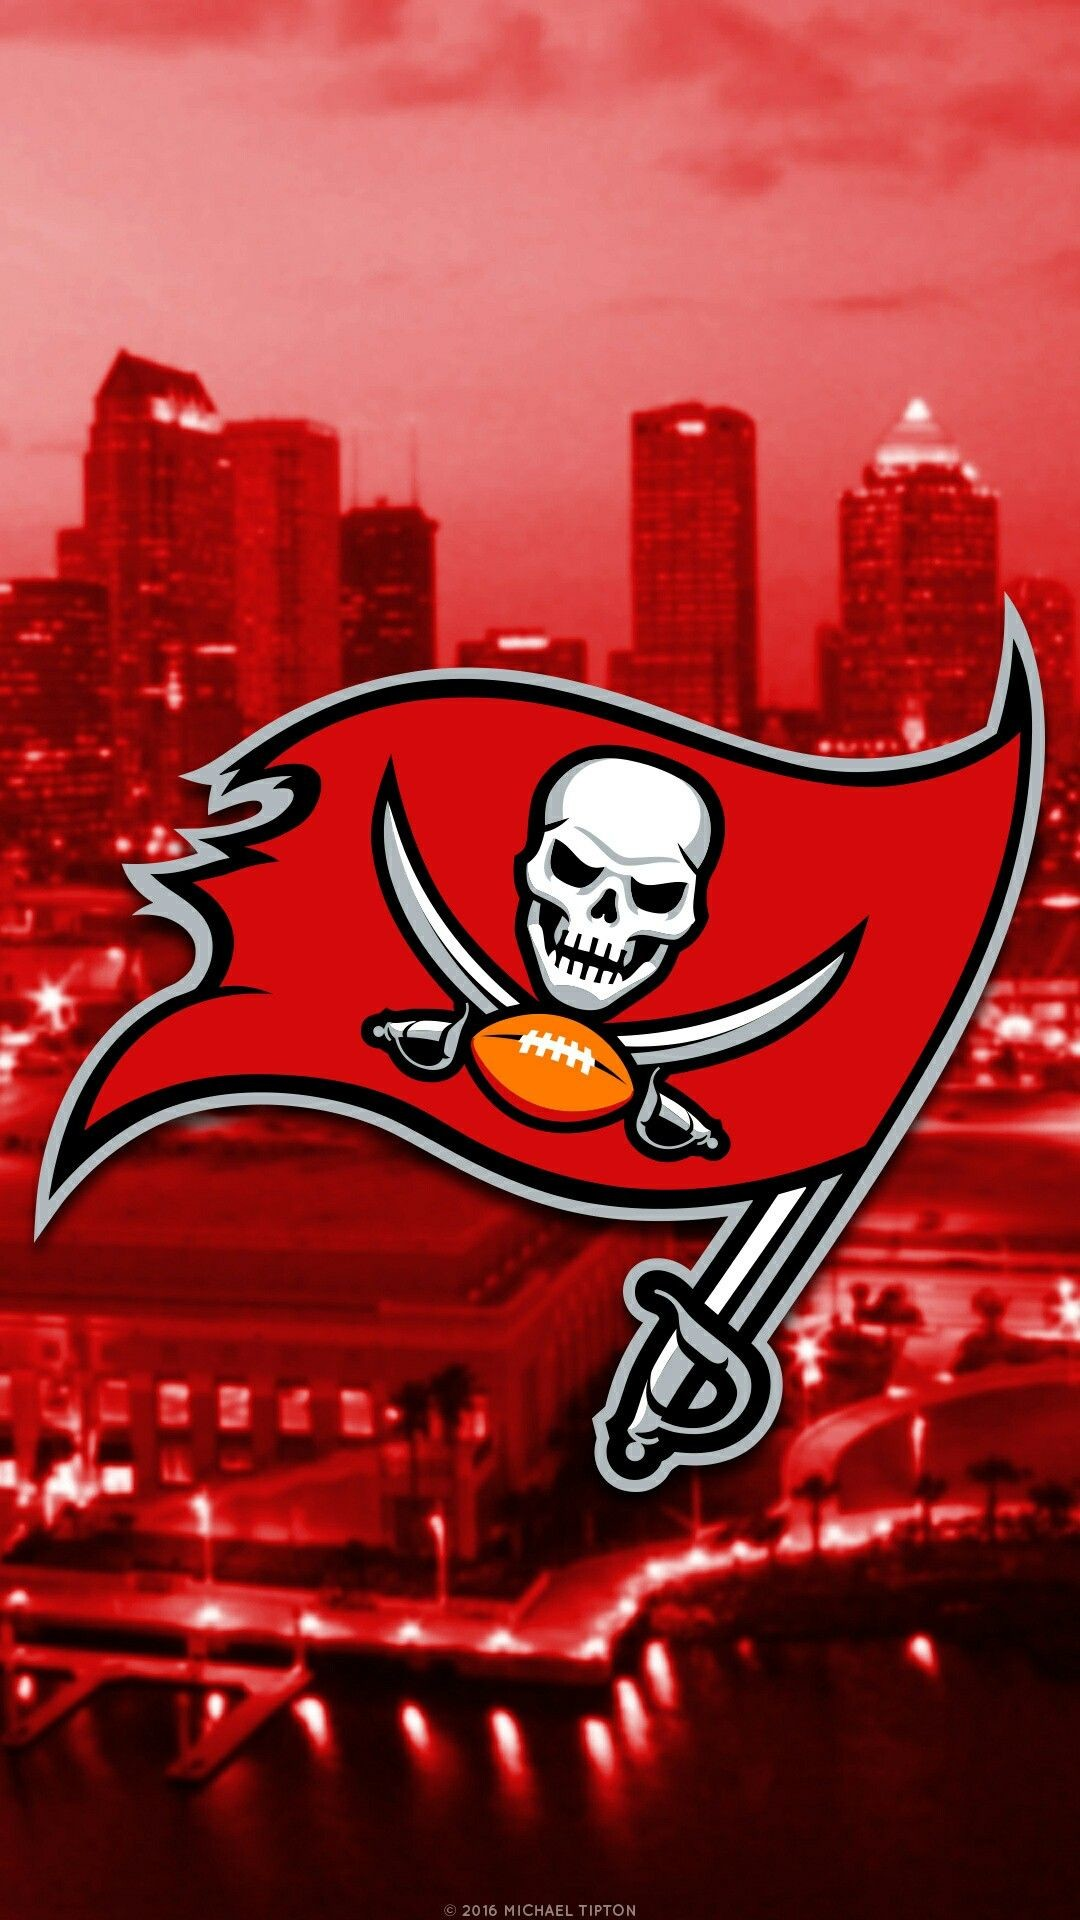 1080x1920 Buccaneers Football, Tampa Bay Buccaneers, Football Crafts, Nfl Logo,  Sports Wallpapers,